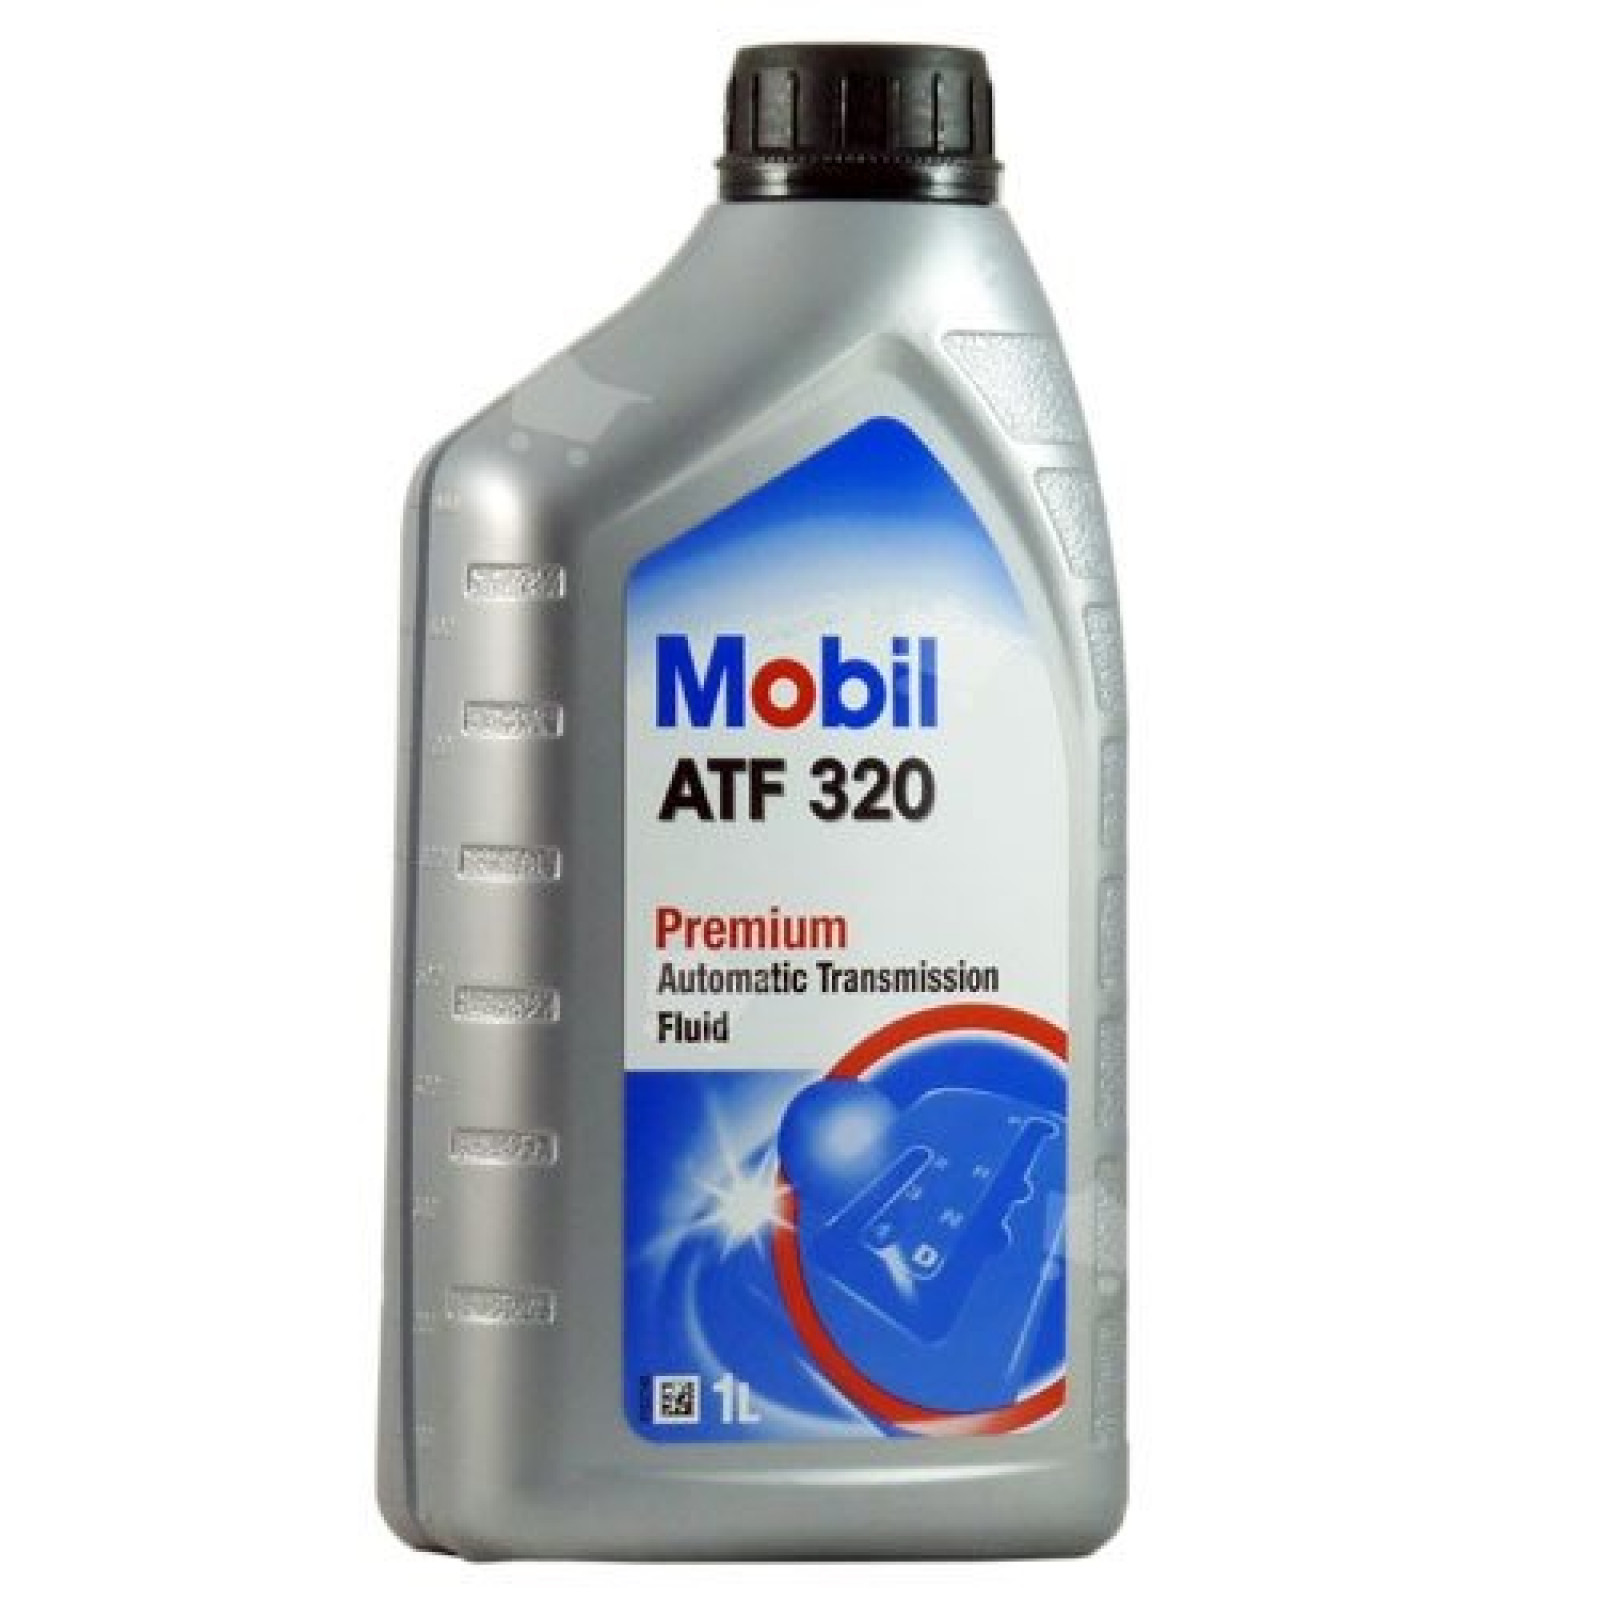 multi s vehicle best mercedes benz amsoil home transmission omaha automatic fluid atf